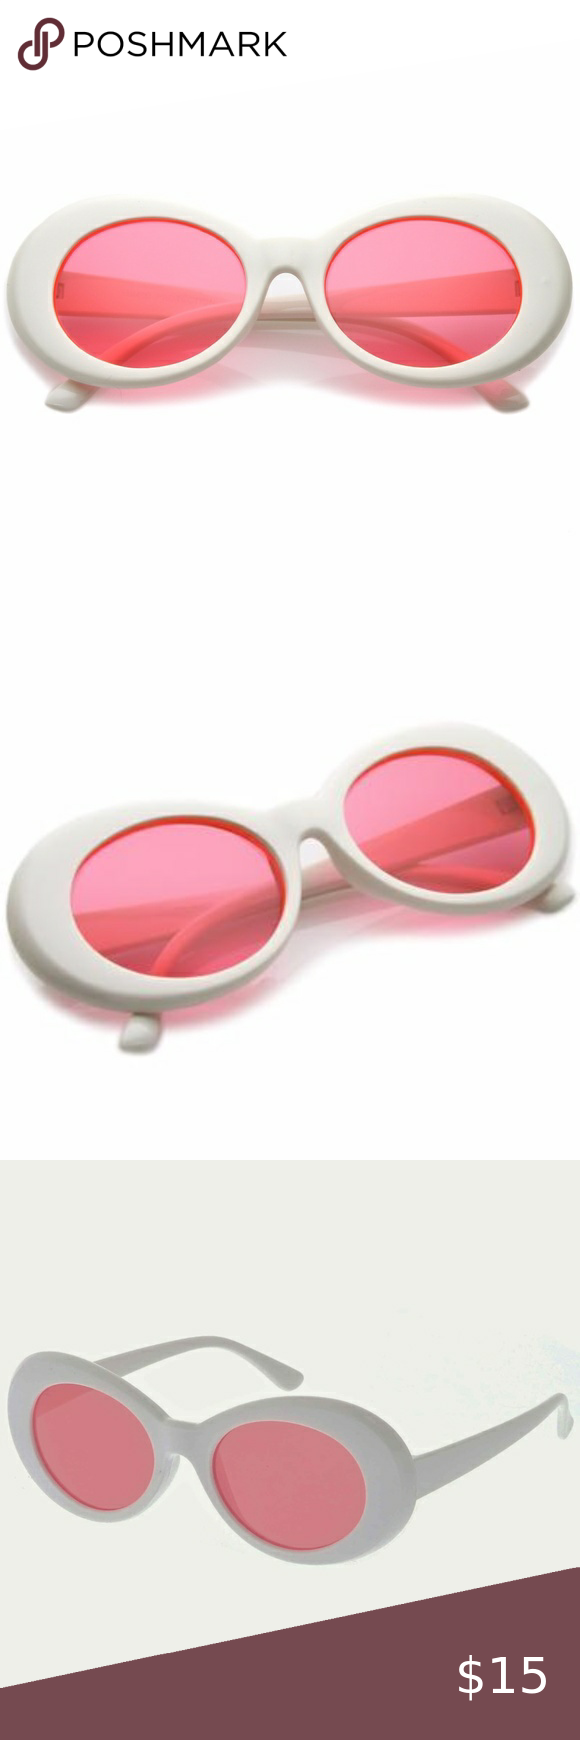 White And Pink Kurt Cobain 90s Clout Goggles Nwt In 2020 Hipster Fashion Sunglasses Accessories Clothes Design